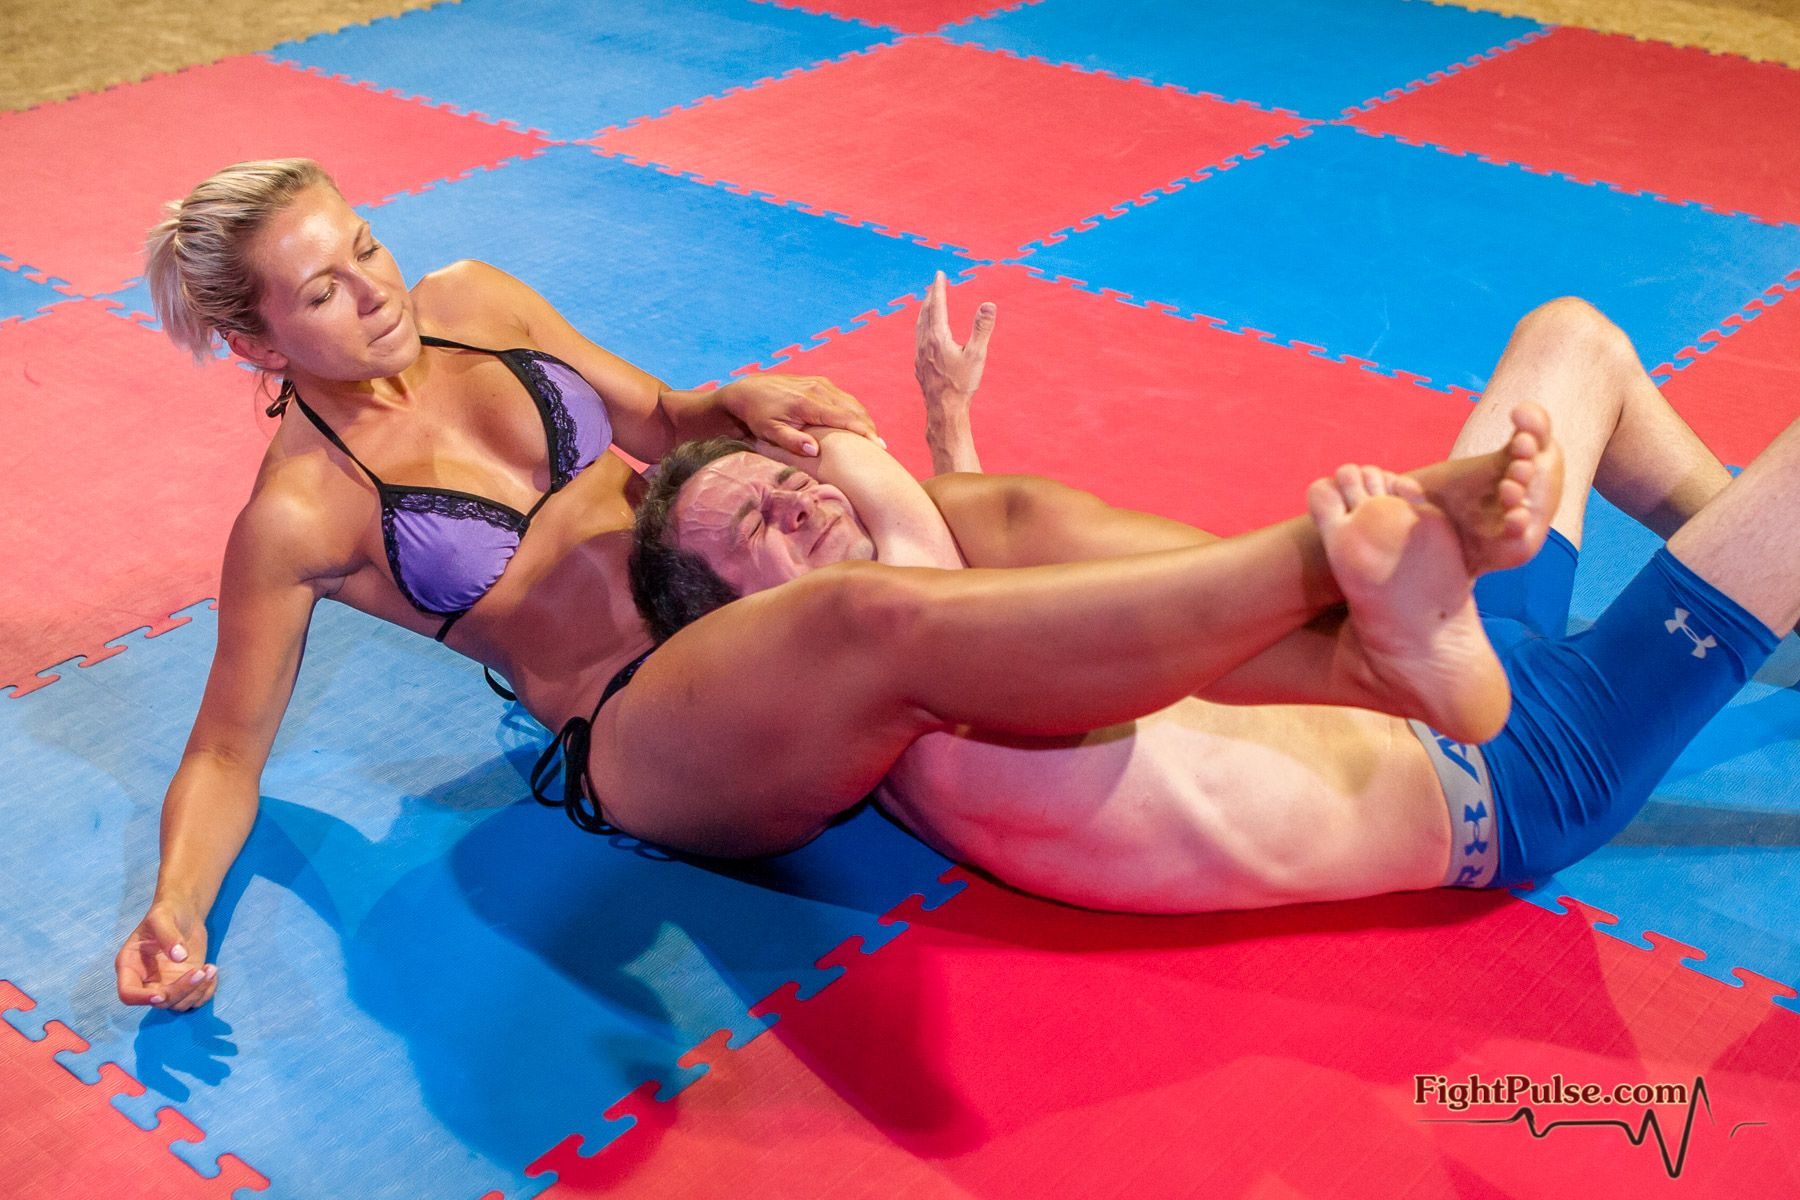 Nc-108 Jenni Czech Vs Luke  Female Victory  Mixed -1678